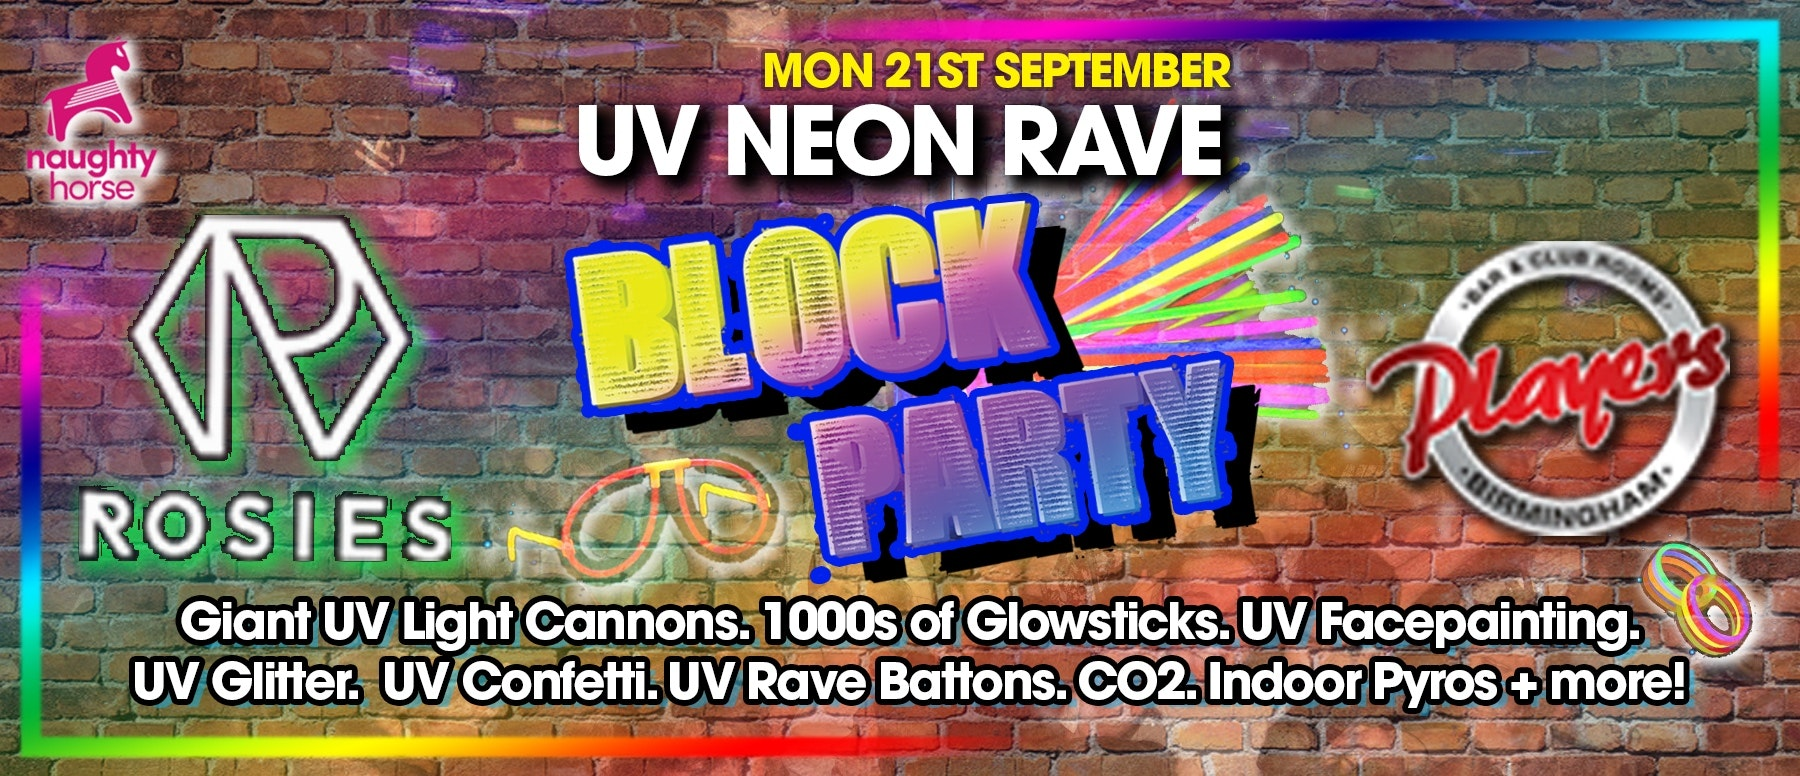 Birmingham Freshers – UV NEON RAVE BLOCK PARTY at Rosies AND Players! (FlexiTicket – Sep, Oct, Nov, Dec, Jan, Feb, March*)!